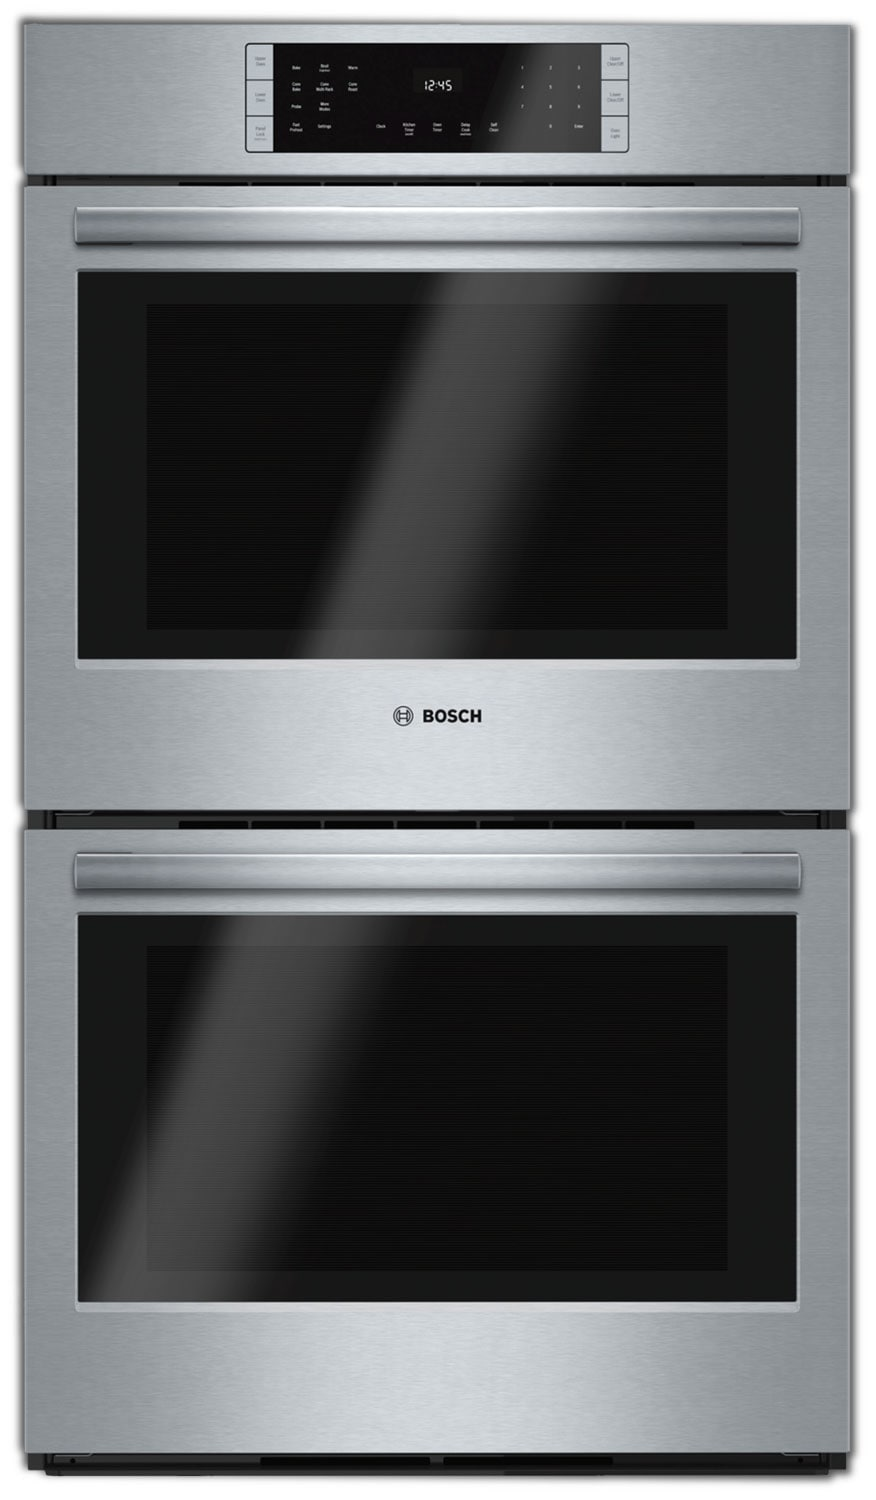 Cooking Products - Bosch Stainless Steel Double Wall Oven (9.2 Cu. Ft.) - HBL8651UC